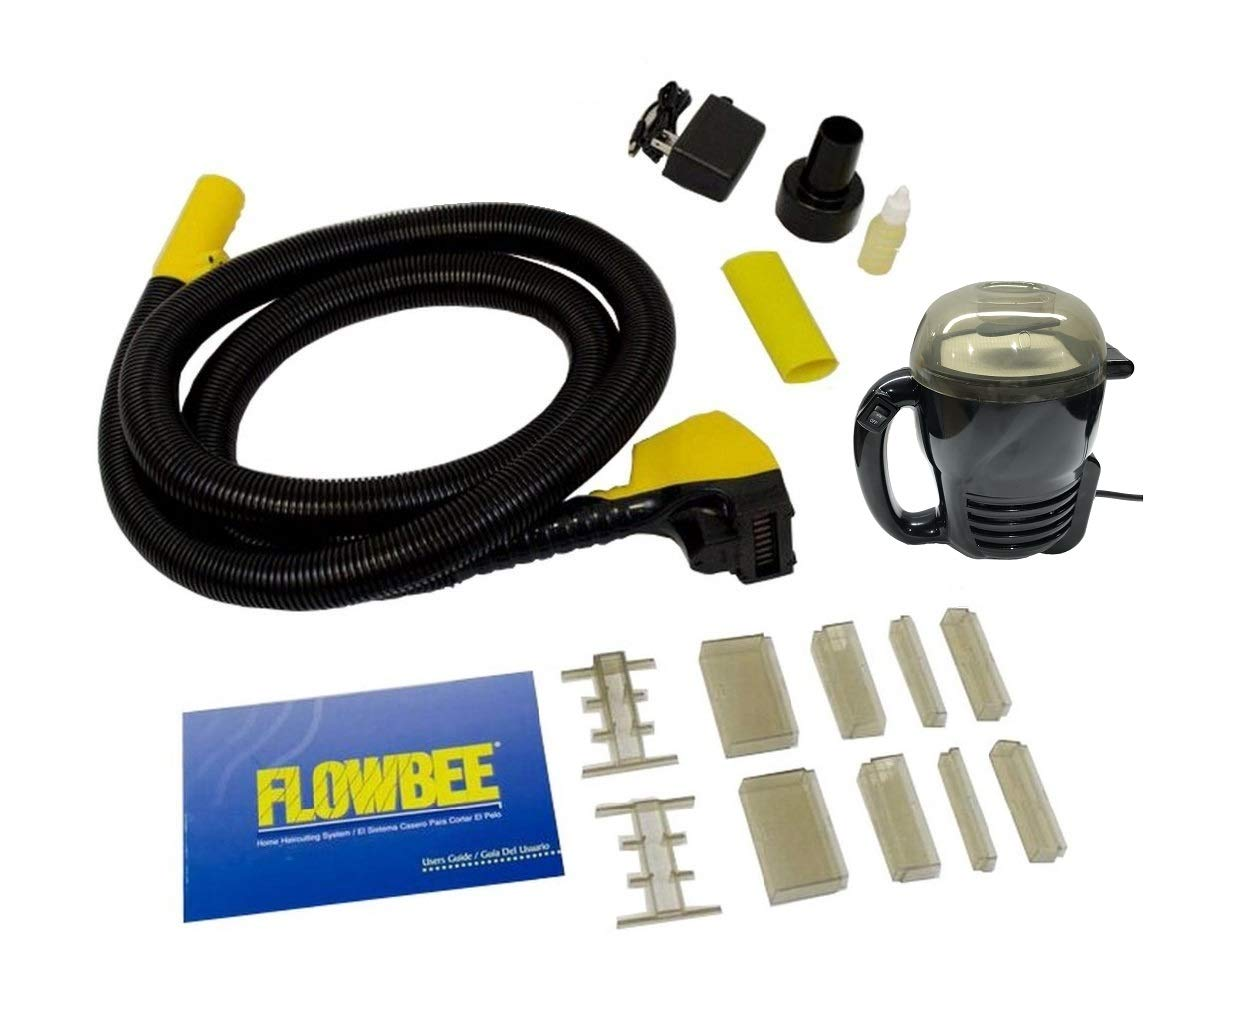 Flowbee Hair Cutting System with Flowbee Super Mini-Vac - Clipper Head/Hose & Vacuum sold together